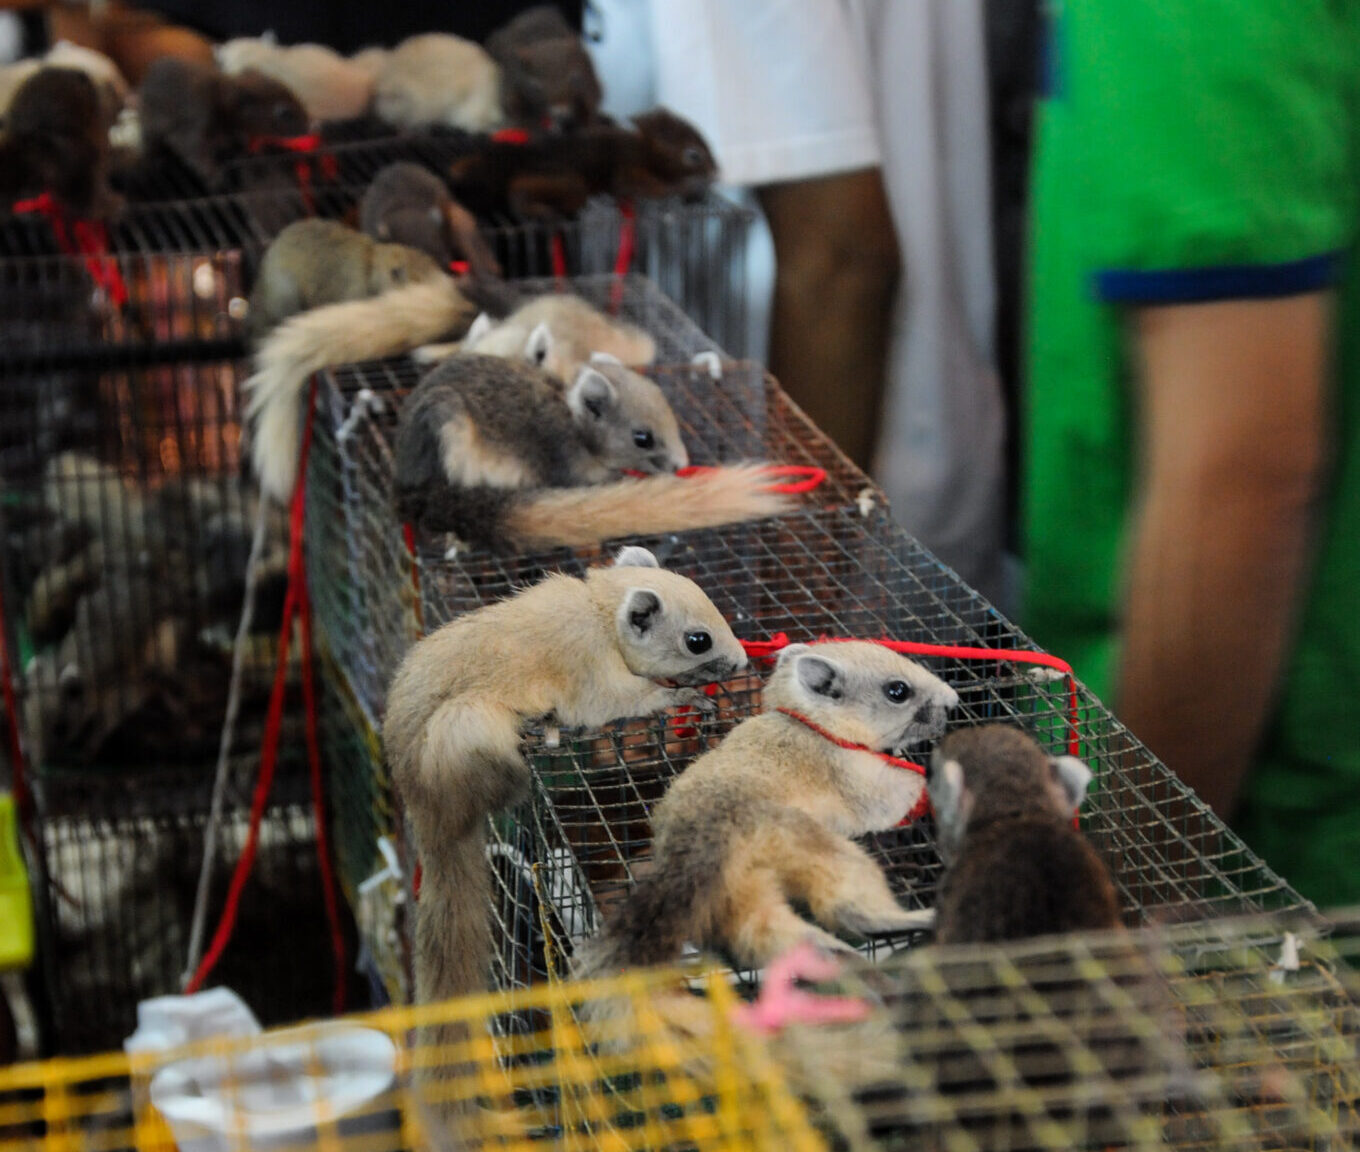 Small mammals tied to strings at a market